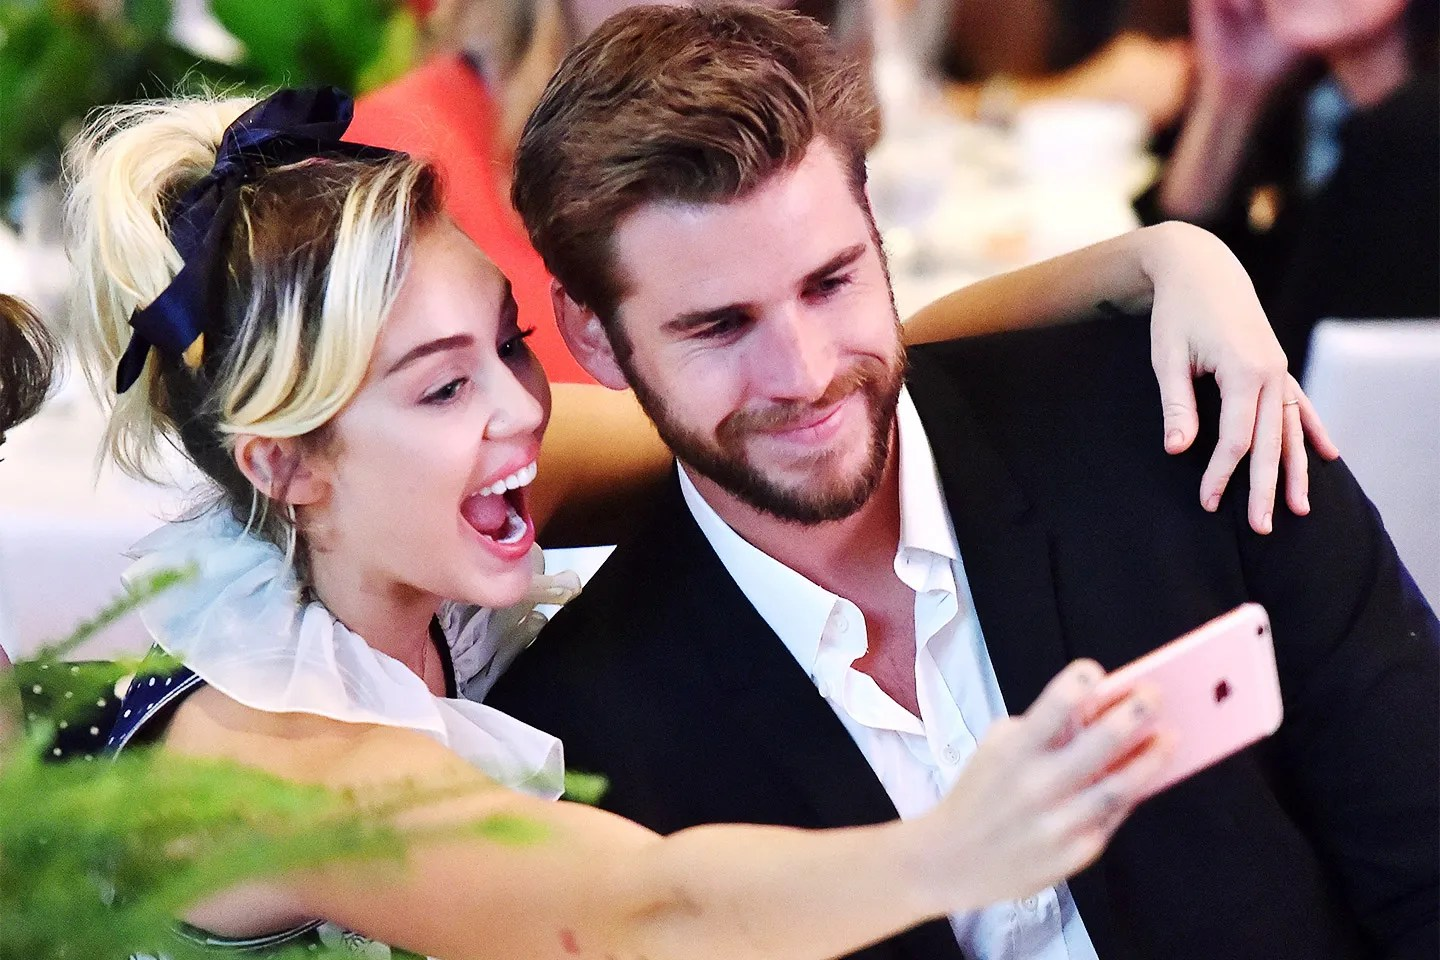 Miley Cyrus S Mom Addresses Those Liam Hemsworth Wedding Rumors Vanity Fair